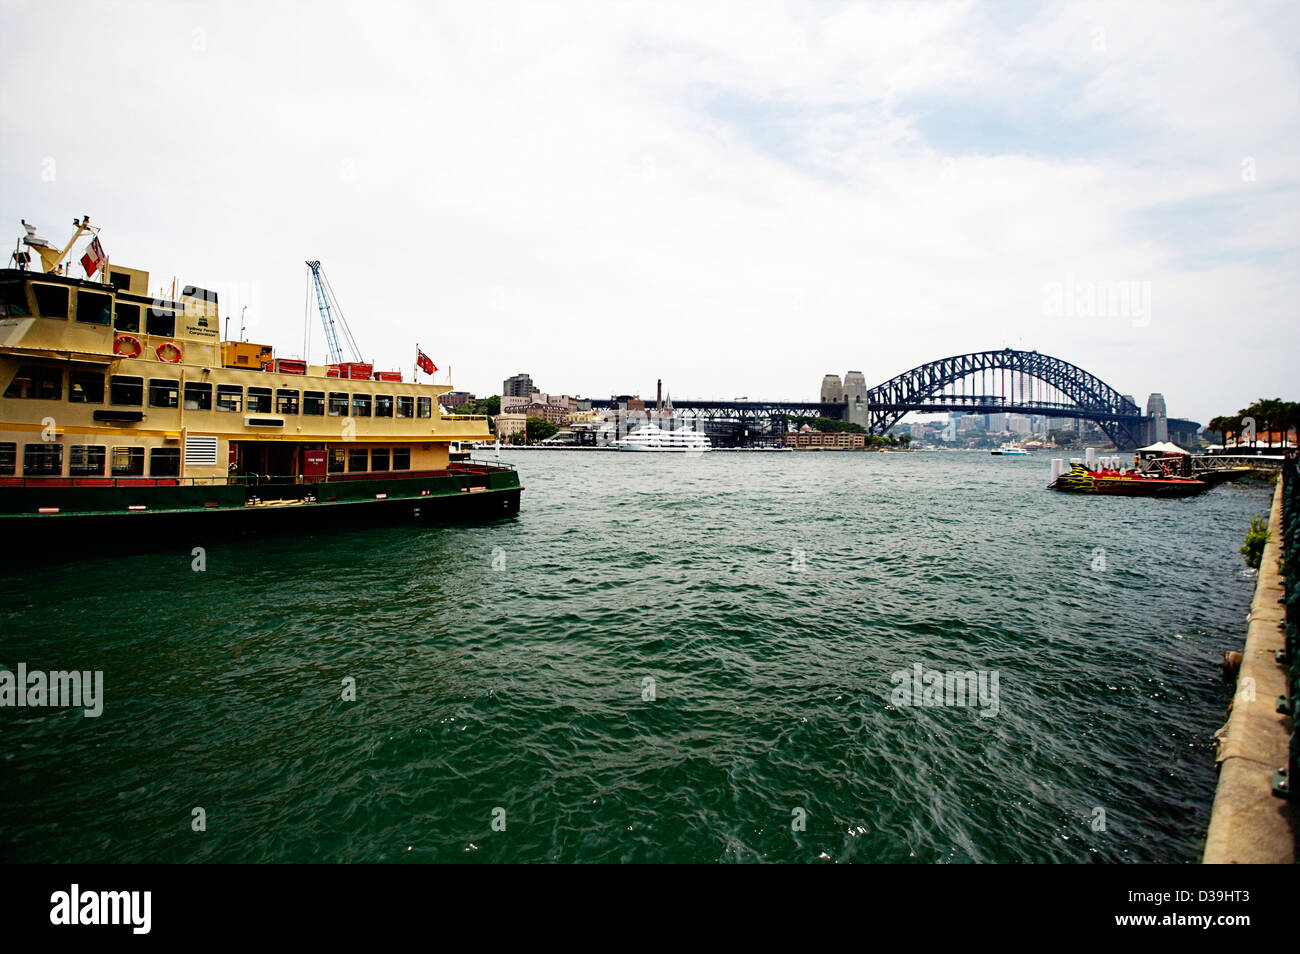 Sydney Harbor Bridge as seen from Circular Quay with a Sydney Ferry in the forefront - Stock Image